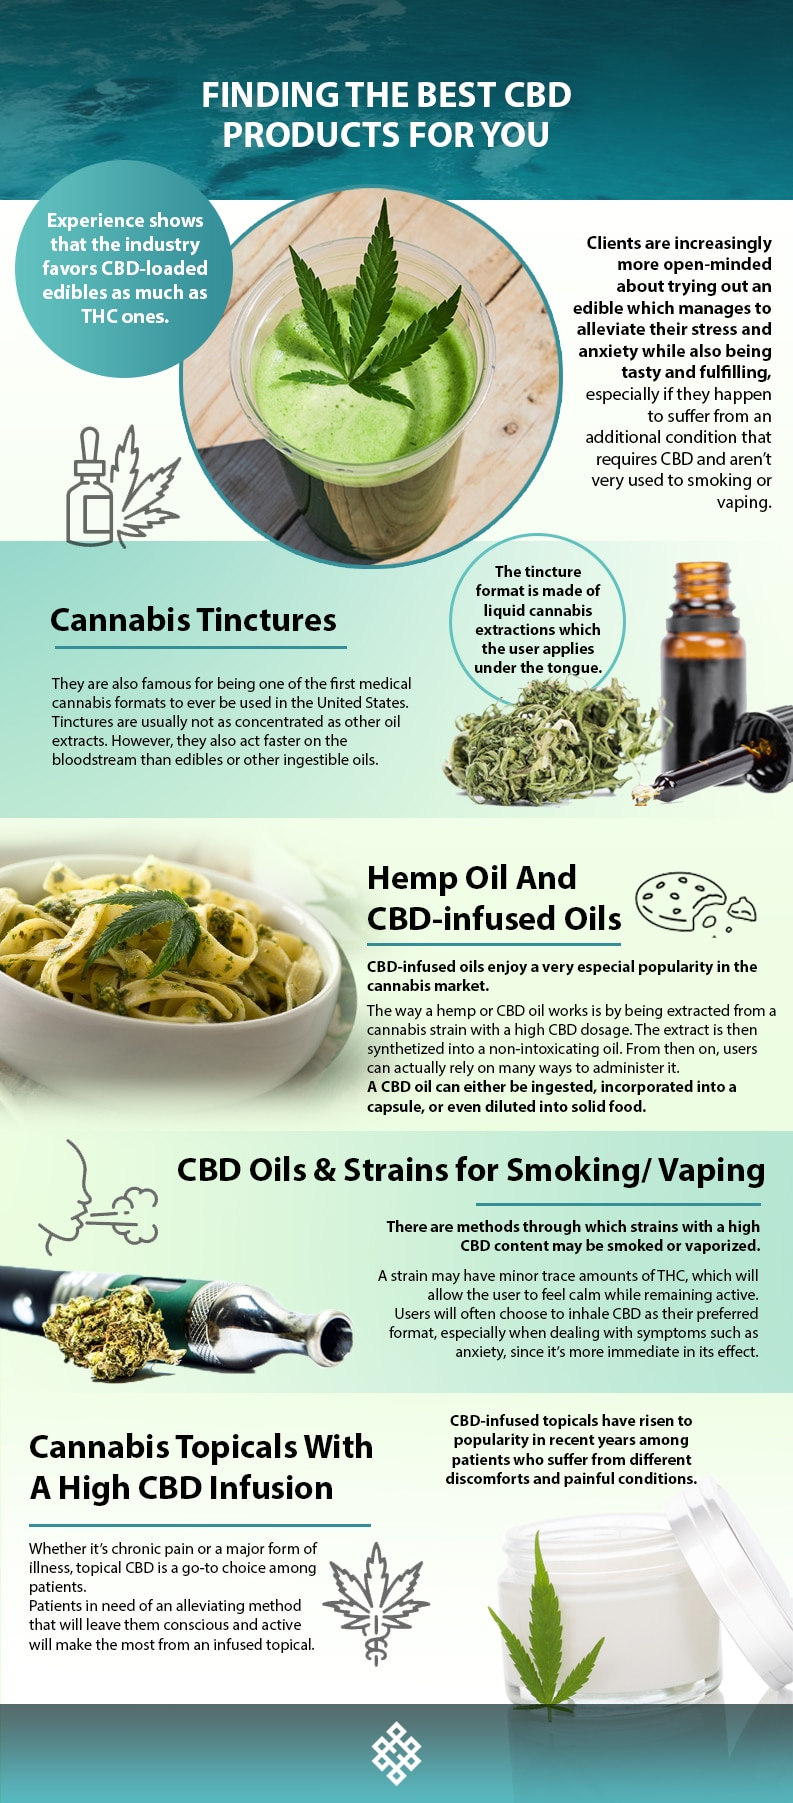 CBD, Finding the Best CBD Products For You